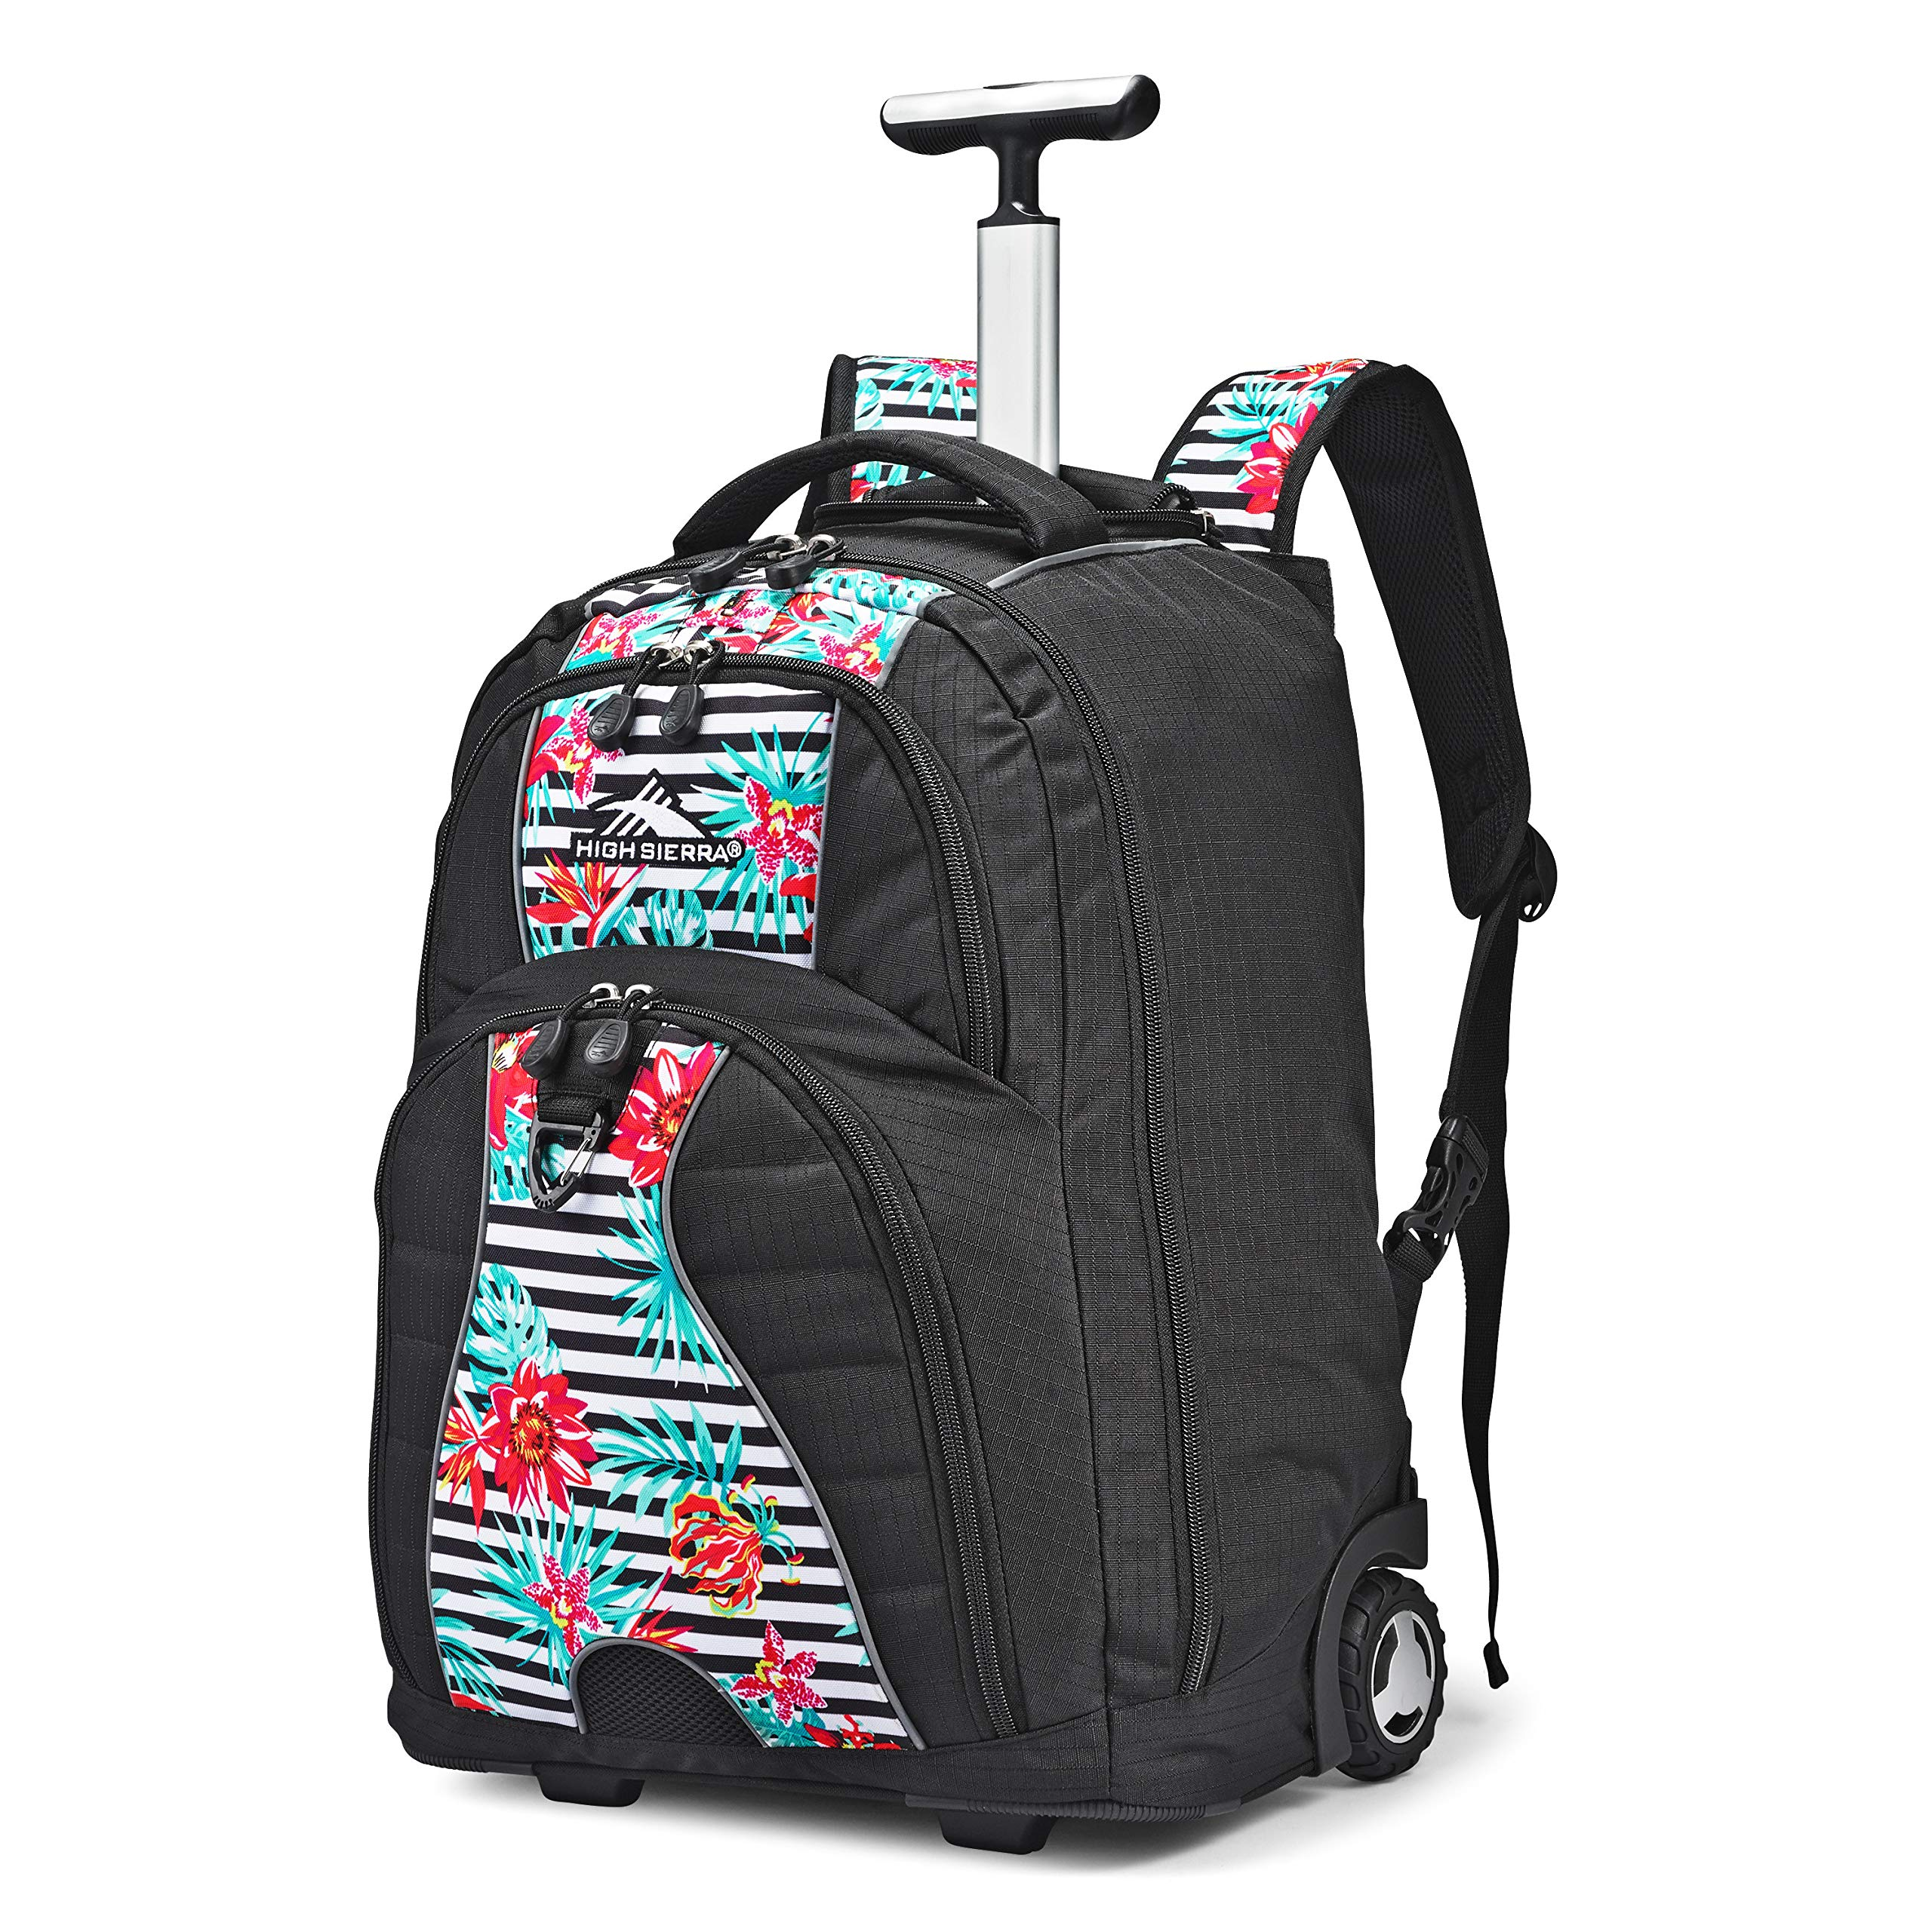 High Sierra Freewheel Wheeled Laptop Backpack, 15-inch Student Laptop Backpack for High School or College, Rolling Gamer Laptop Backpack, Wheeled Business Laptop Backpack, Perfect for Travel by High Sierra